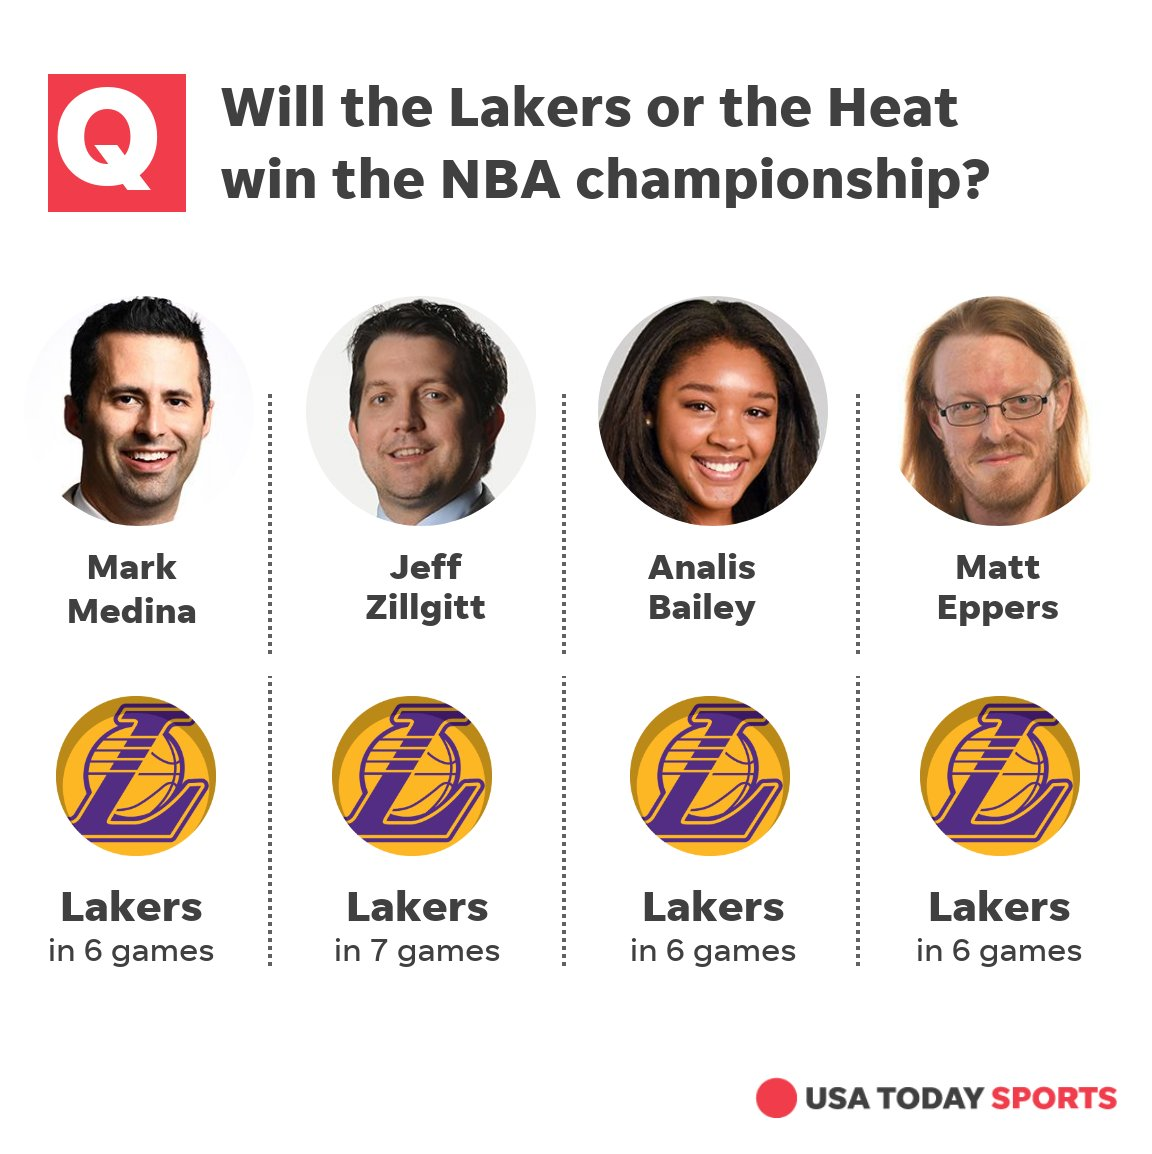 The #NBAFinals are now underway and the @usatodaynbateam have made their picks for the series.   Follow @MarkG_Medina, @JeffZillgitt, @meppers_ and @analisbailey for more #NBA coverage. https://t.co/yWN2IfphBv https://t.co/c01ppVAlow